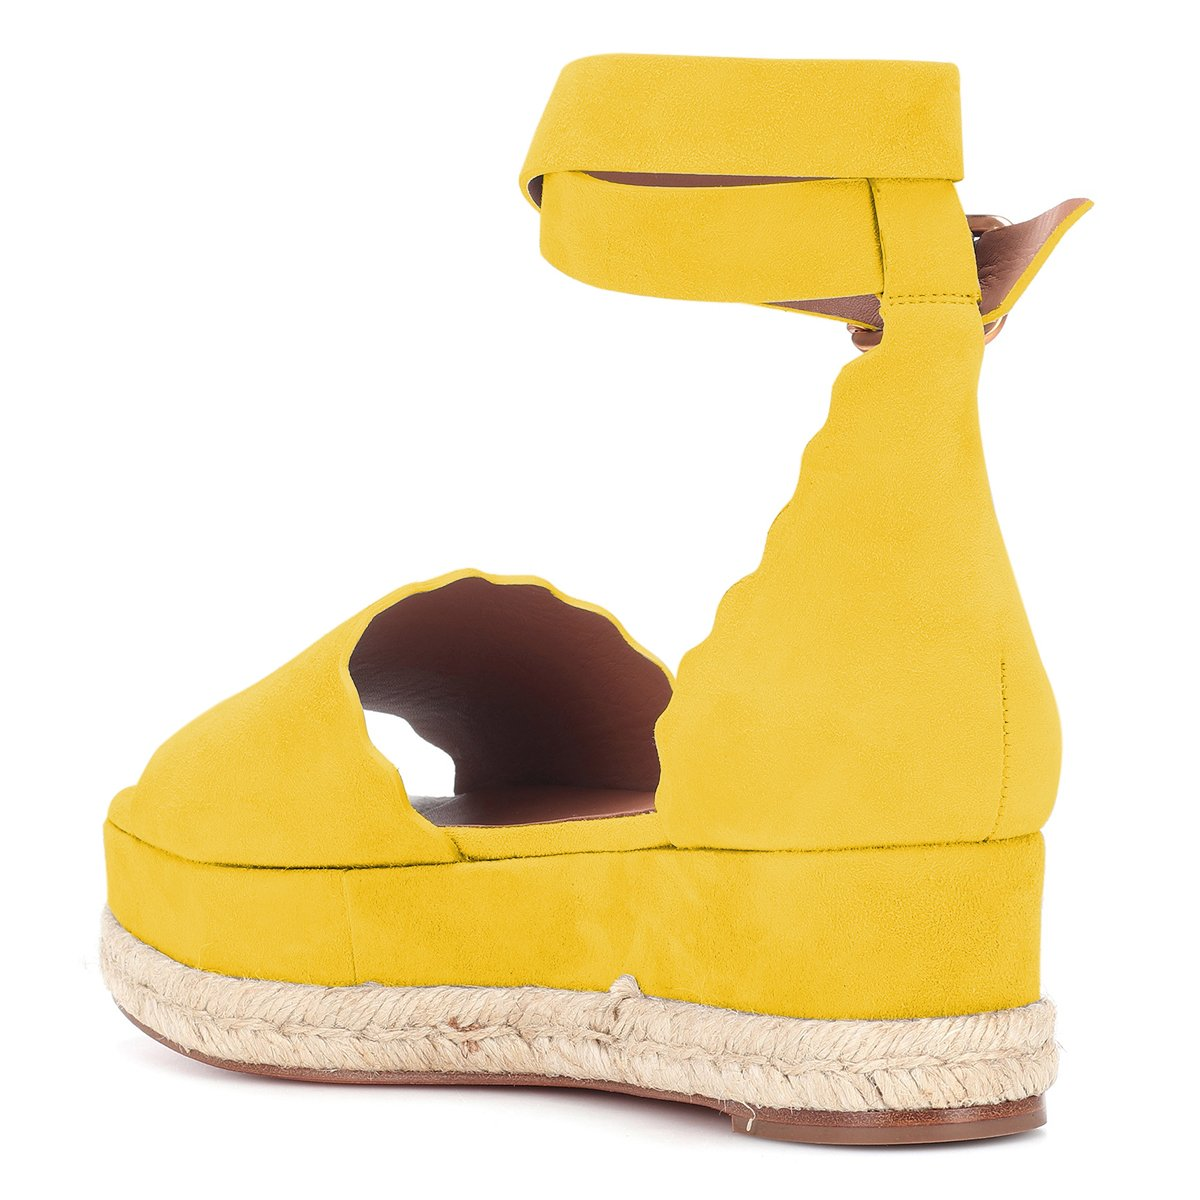 YDN Ankle Women Espadrille Peep Toe Ankle YDN Straps Wedge Sandals Low Heels Platform Shoes with Buckle B07DCNWYD6 5 M US|Yellow 44e74f